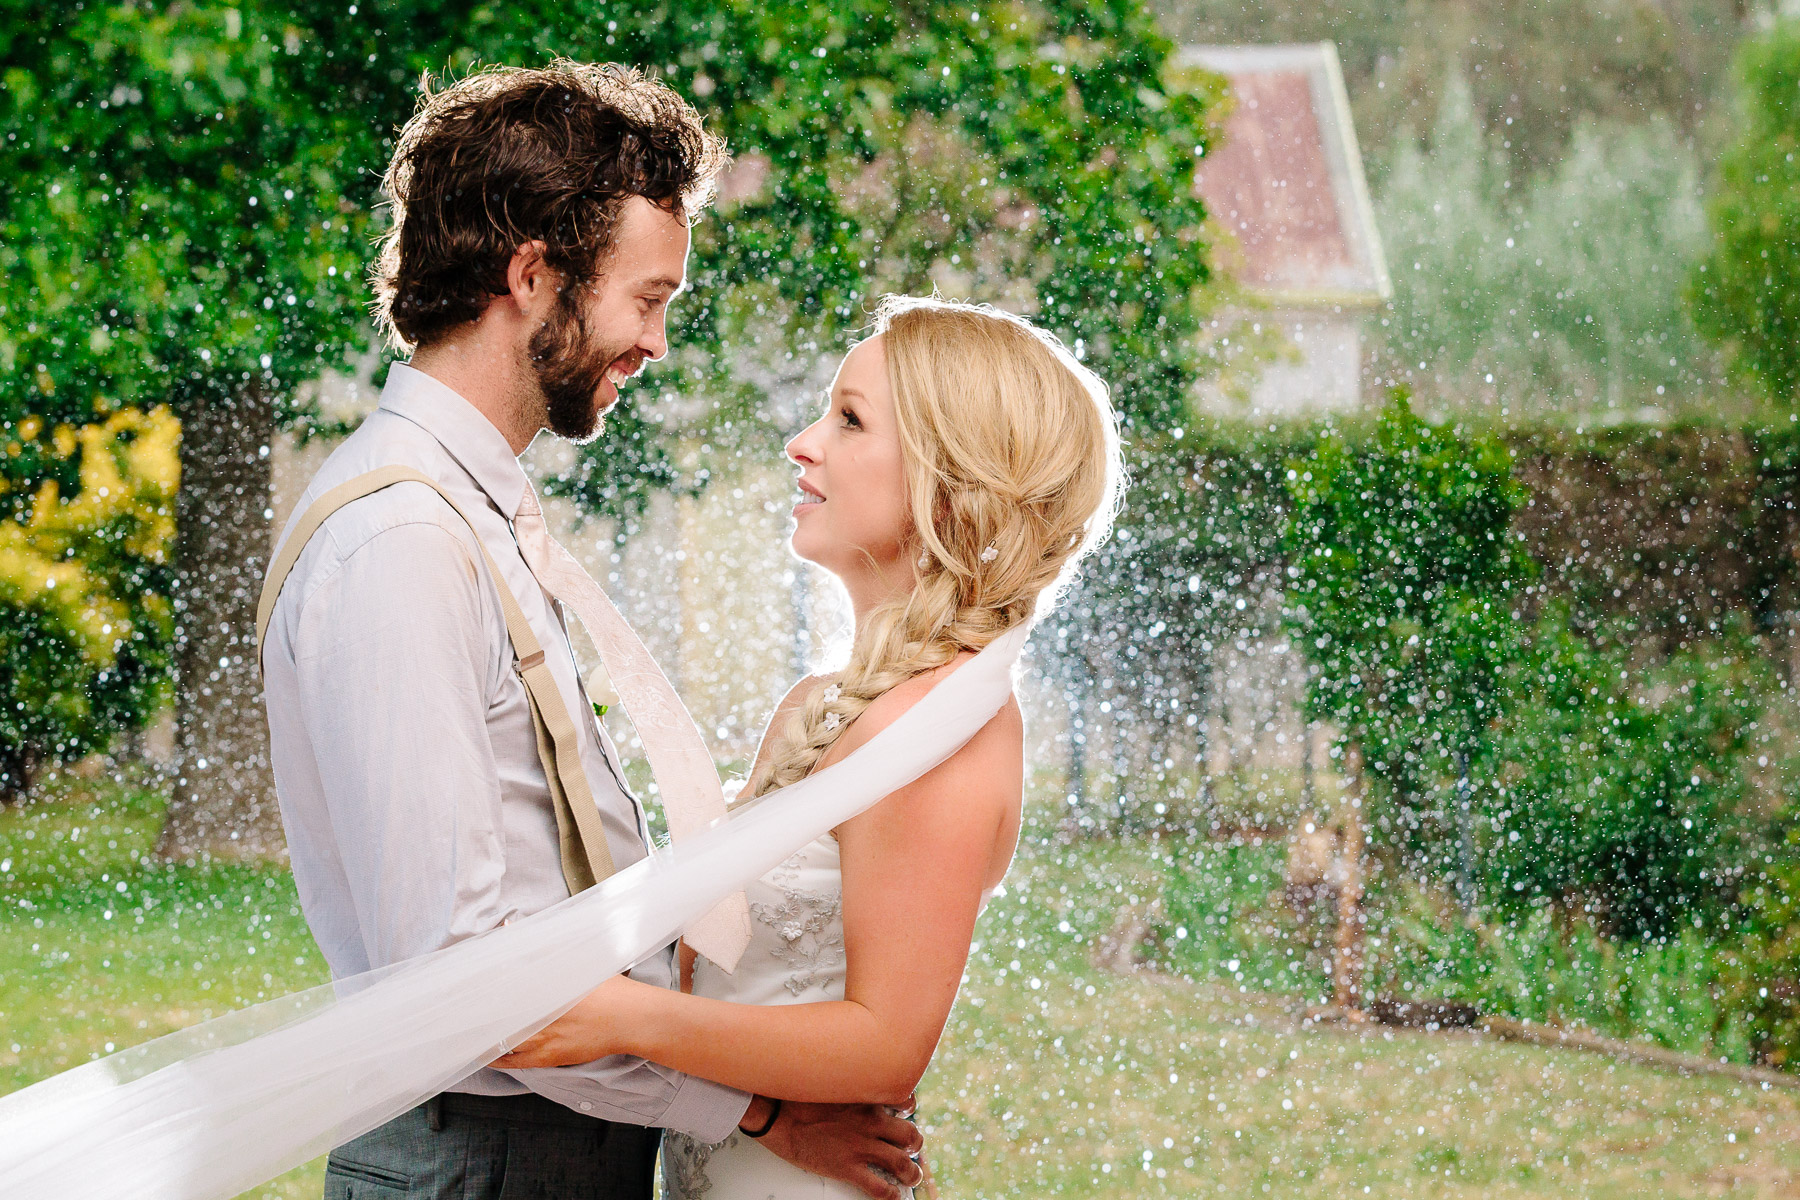 Justin_and_Jim_Best_Of_Wedding_Photography-9.jpg